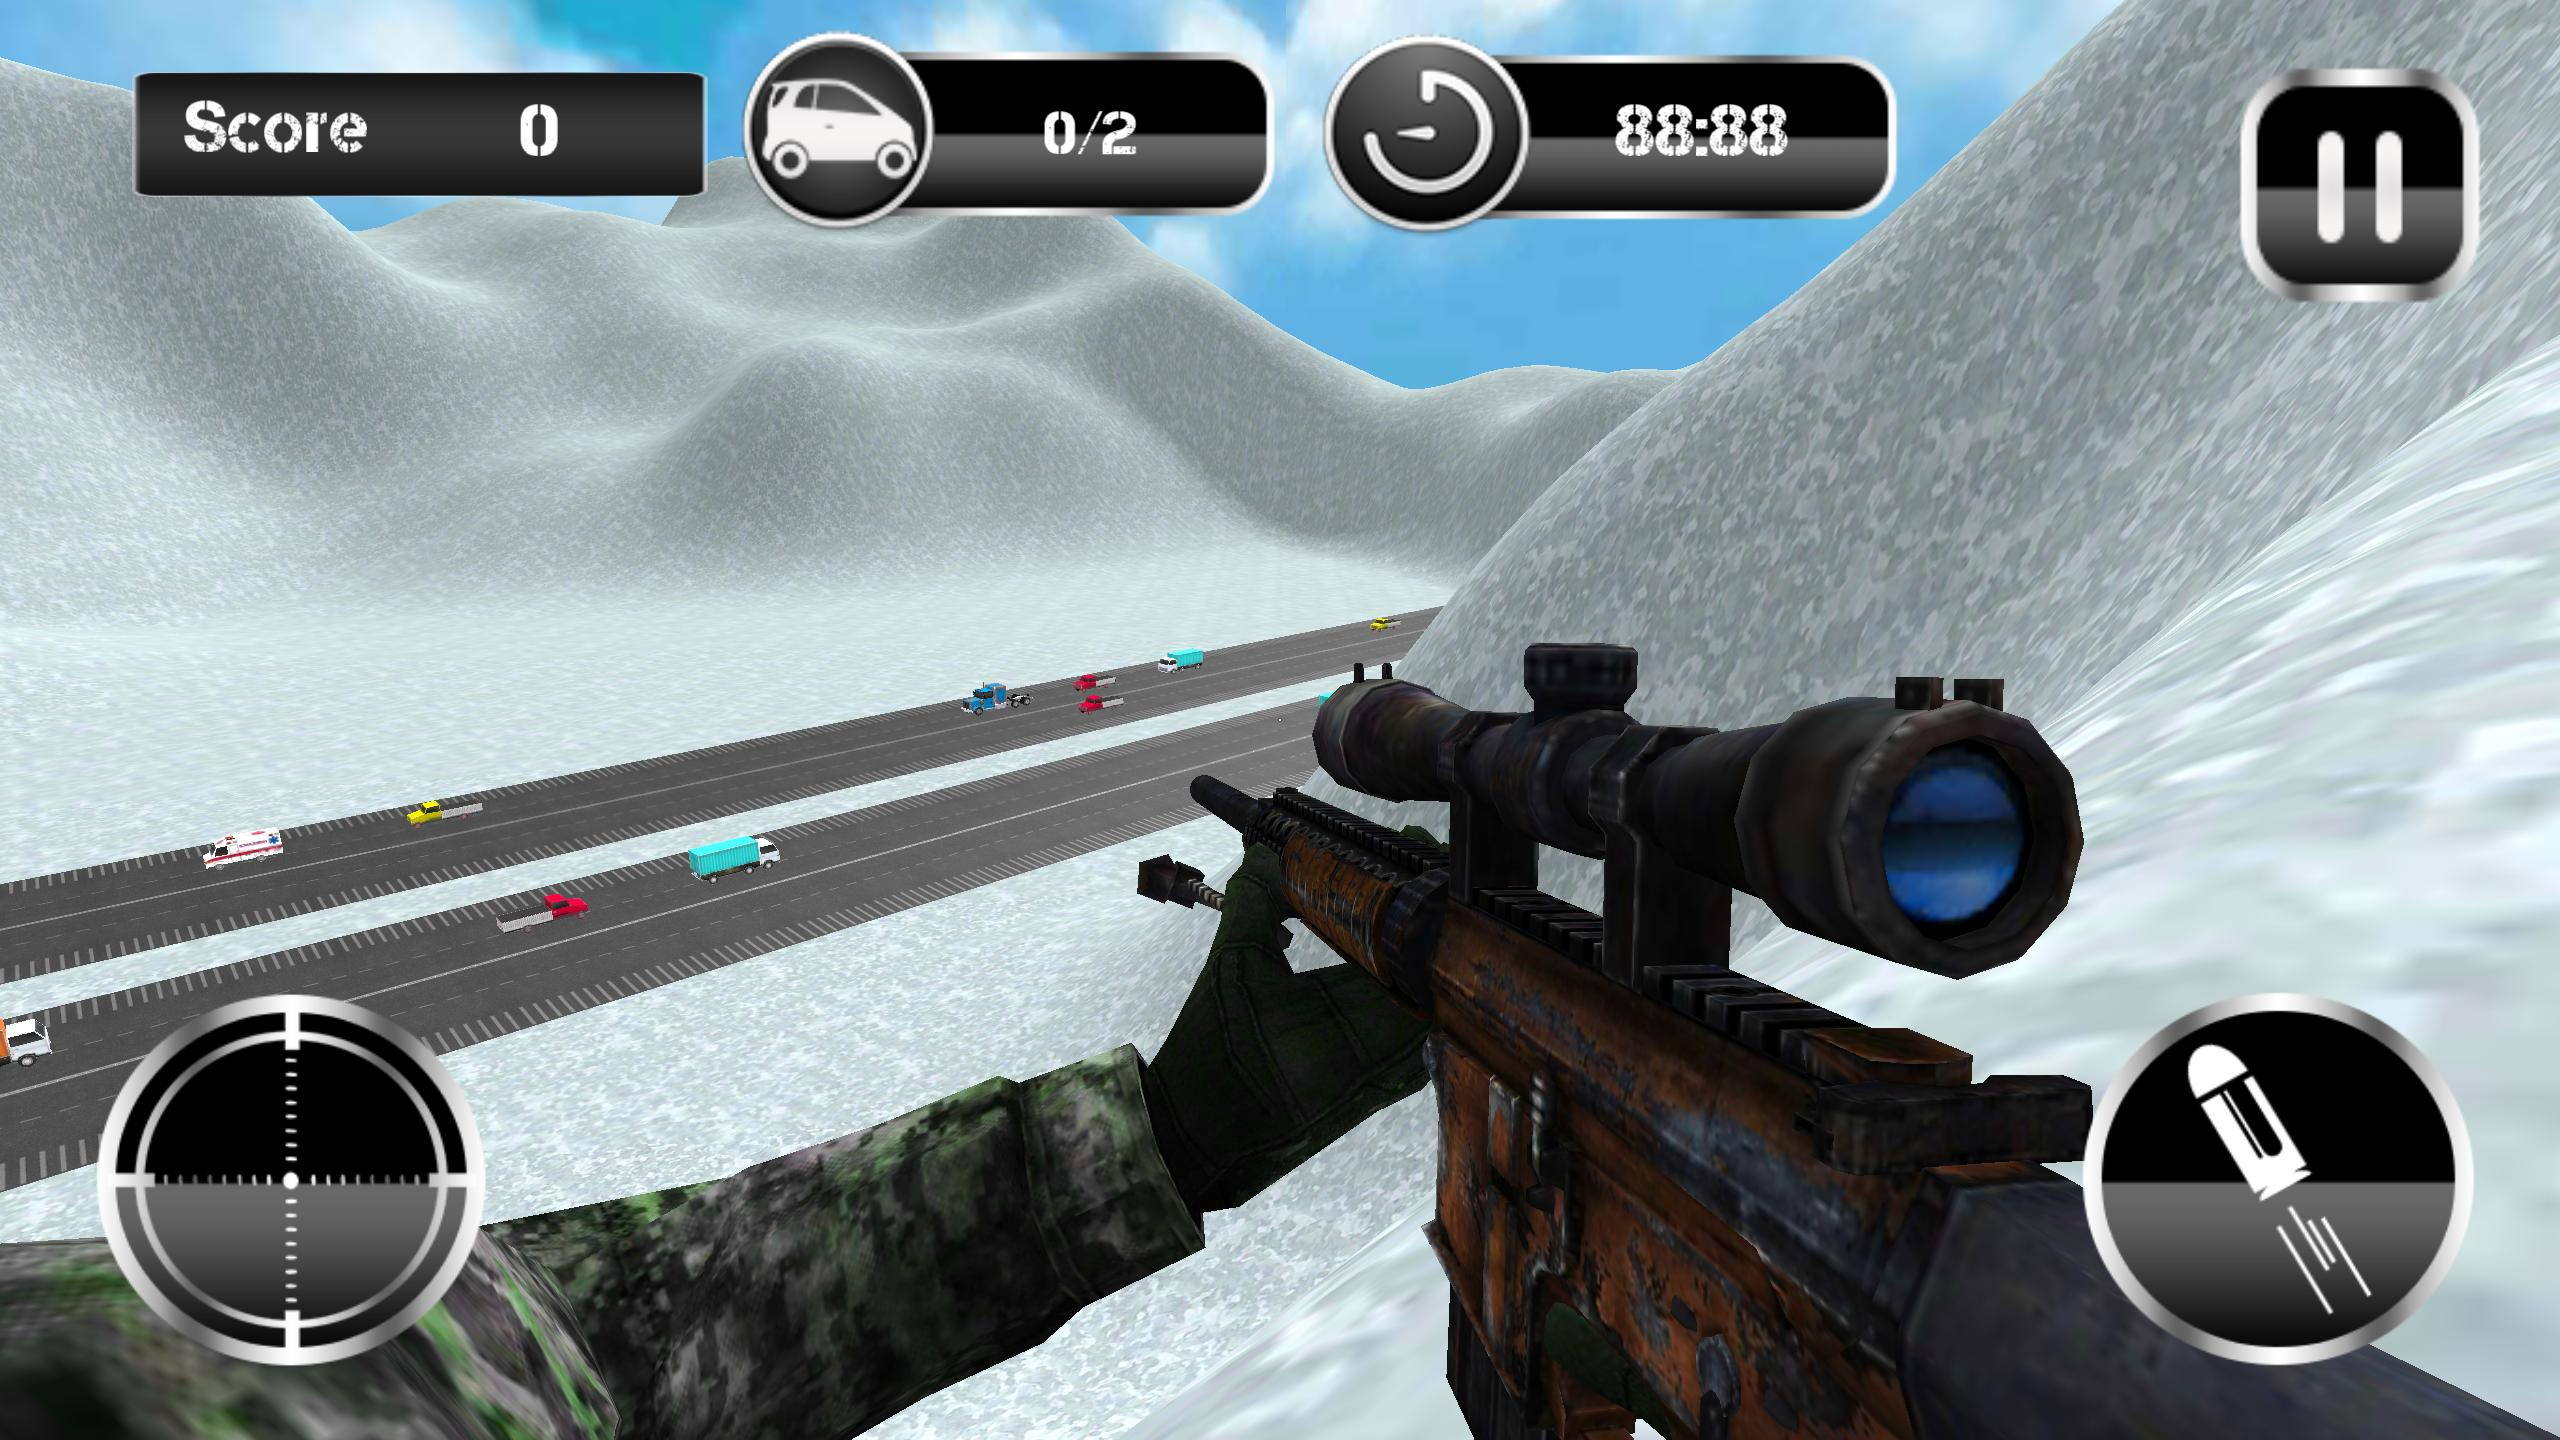 American Sniper Traffic Hunt for Android - APK Download